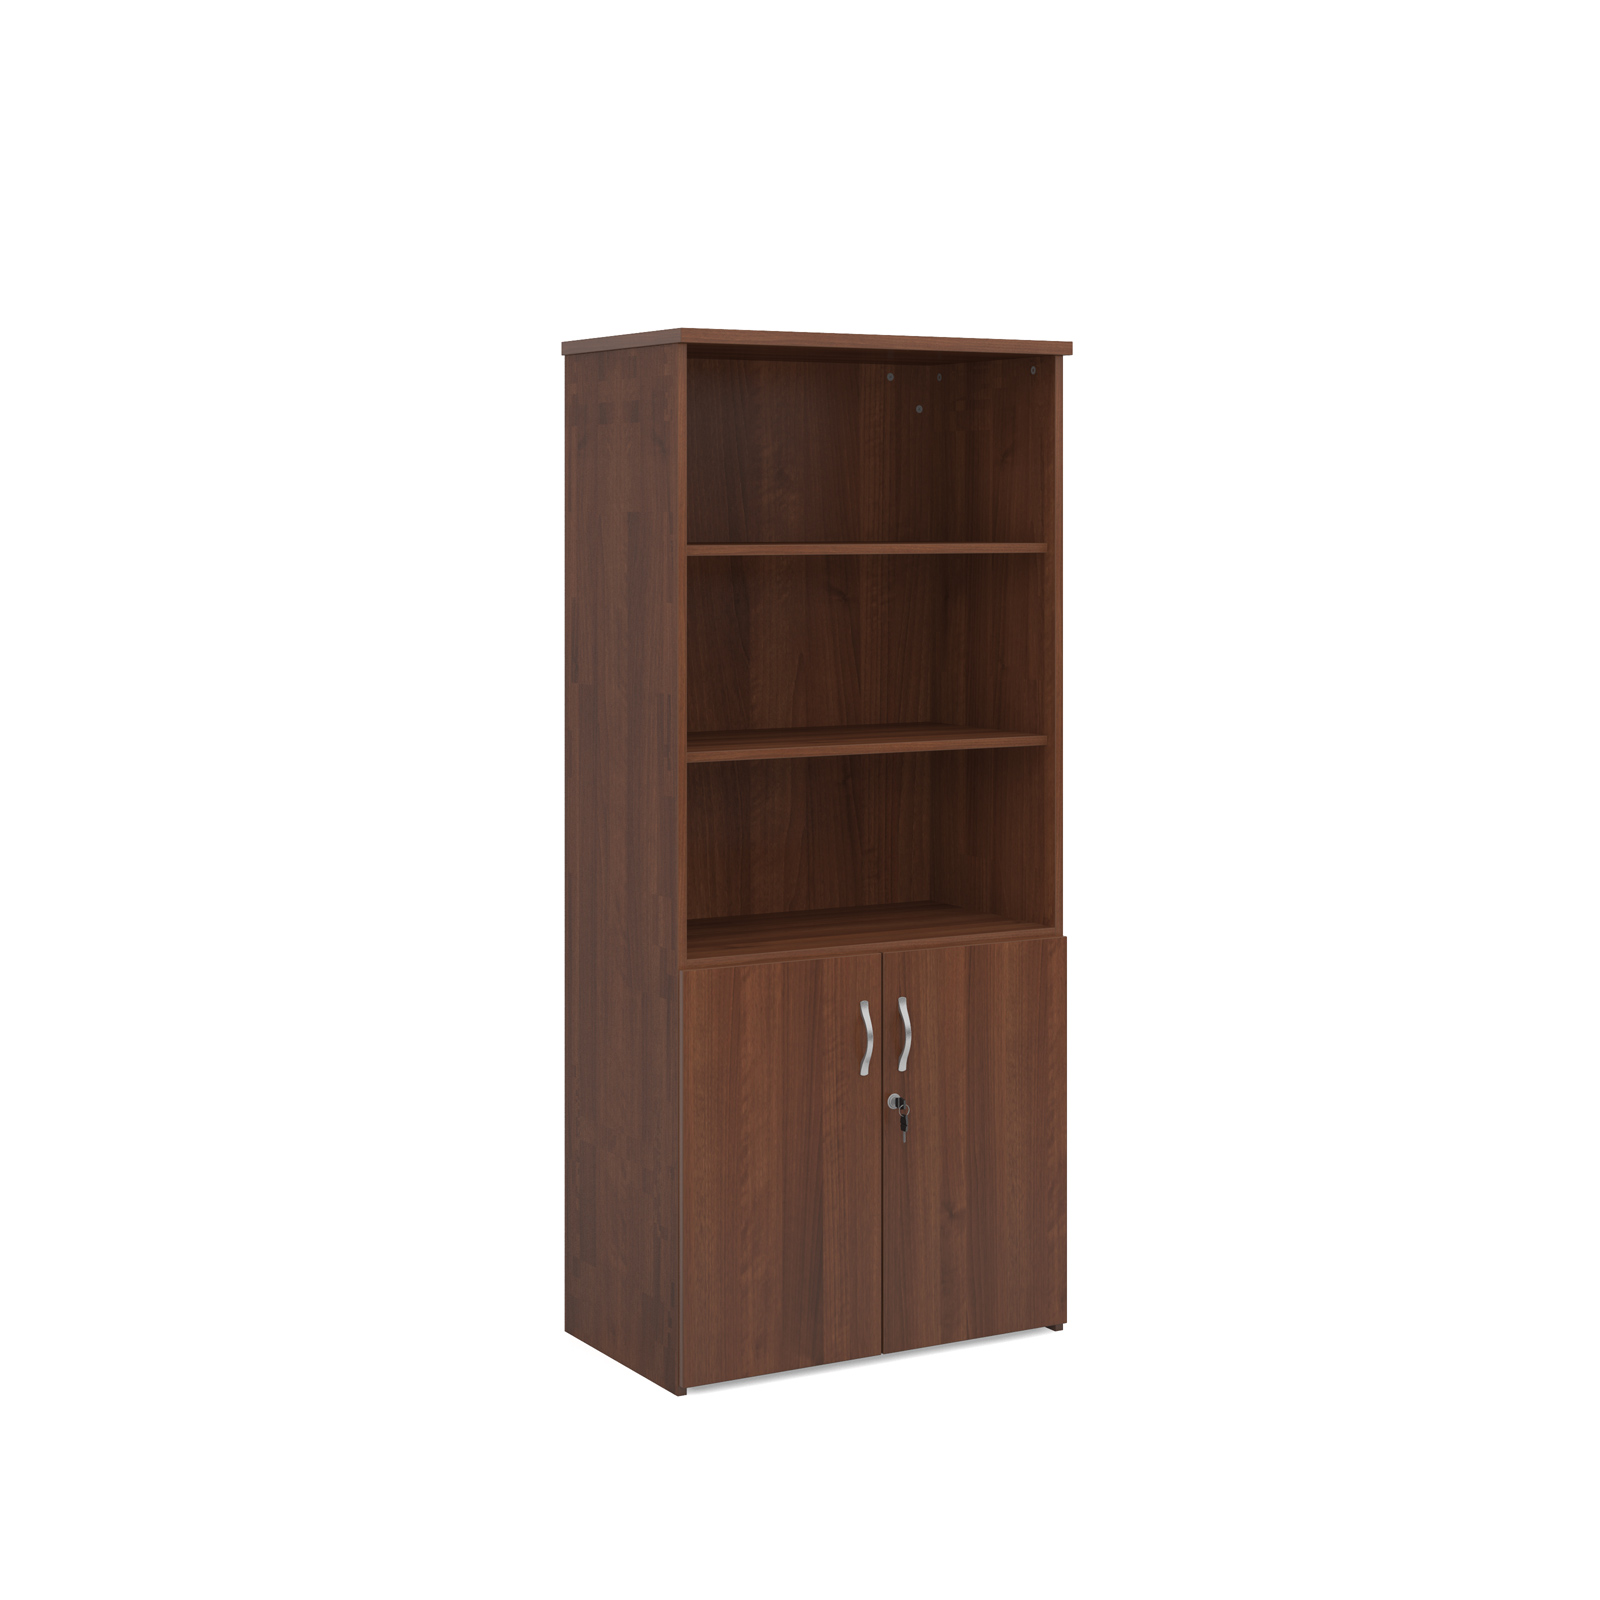 1790mm high combination unit with open top and wood doors in walnut